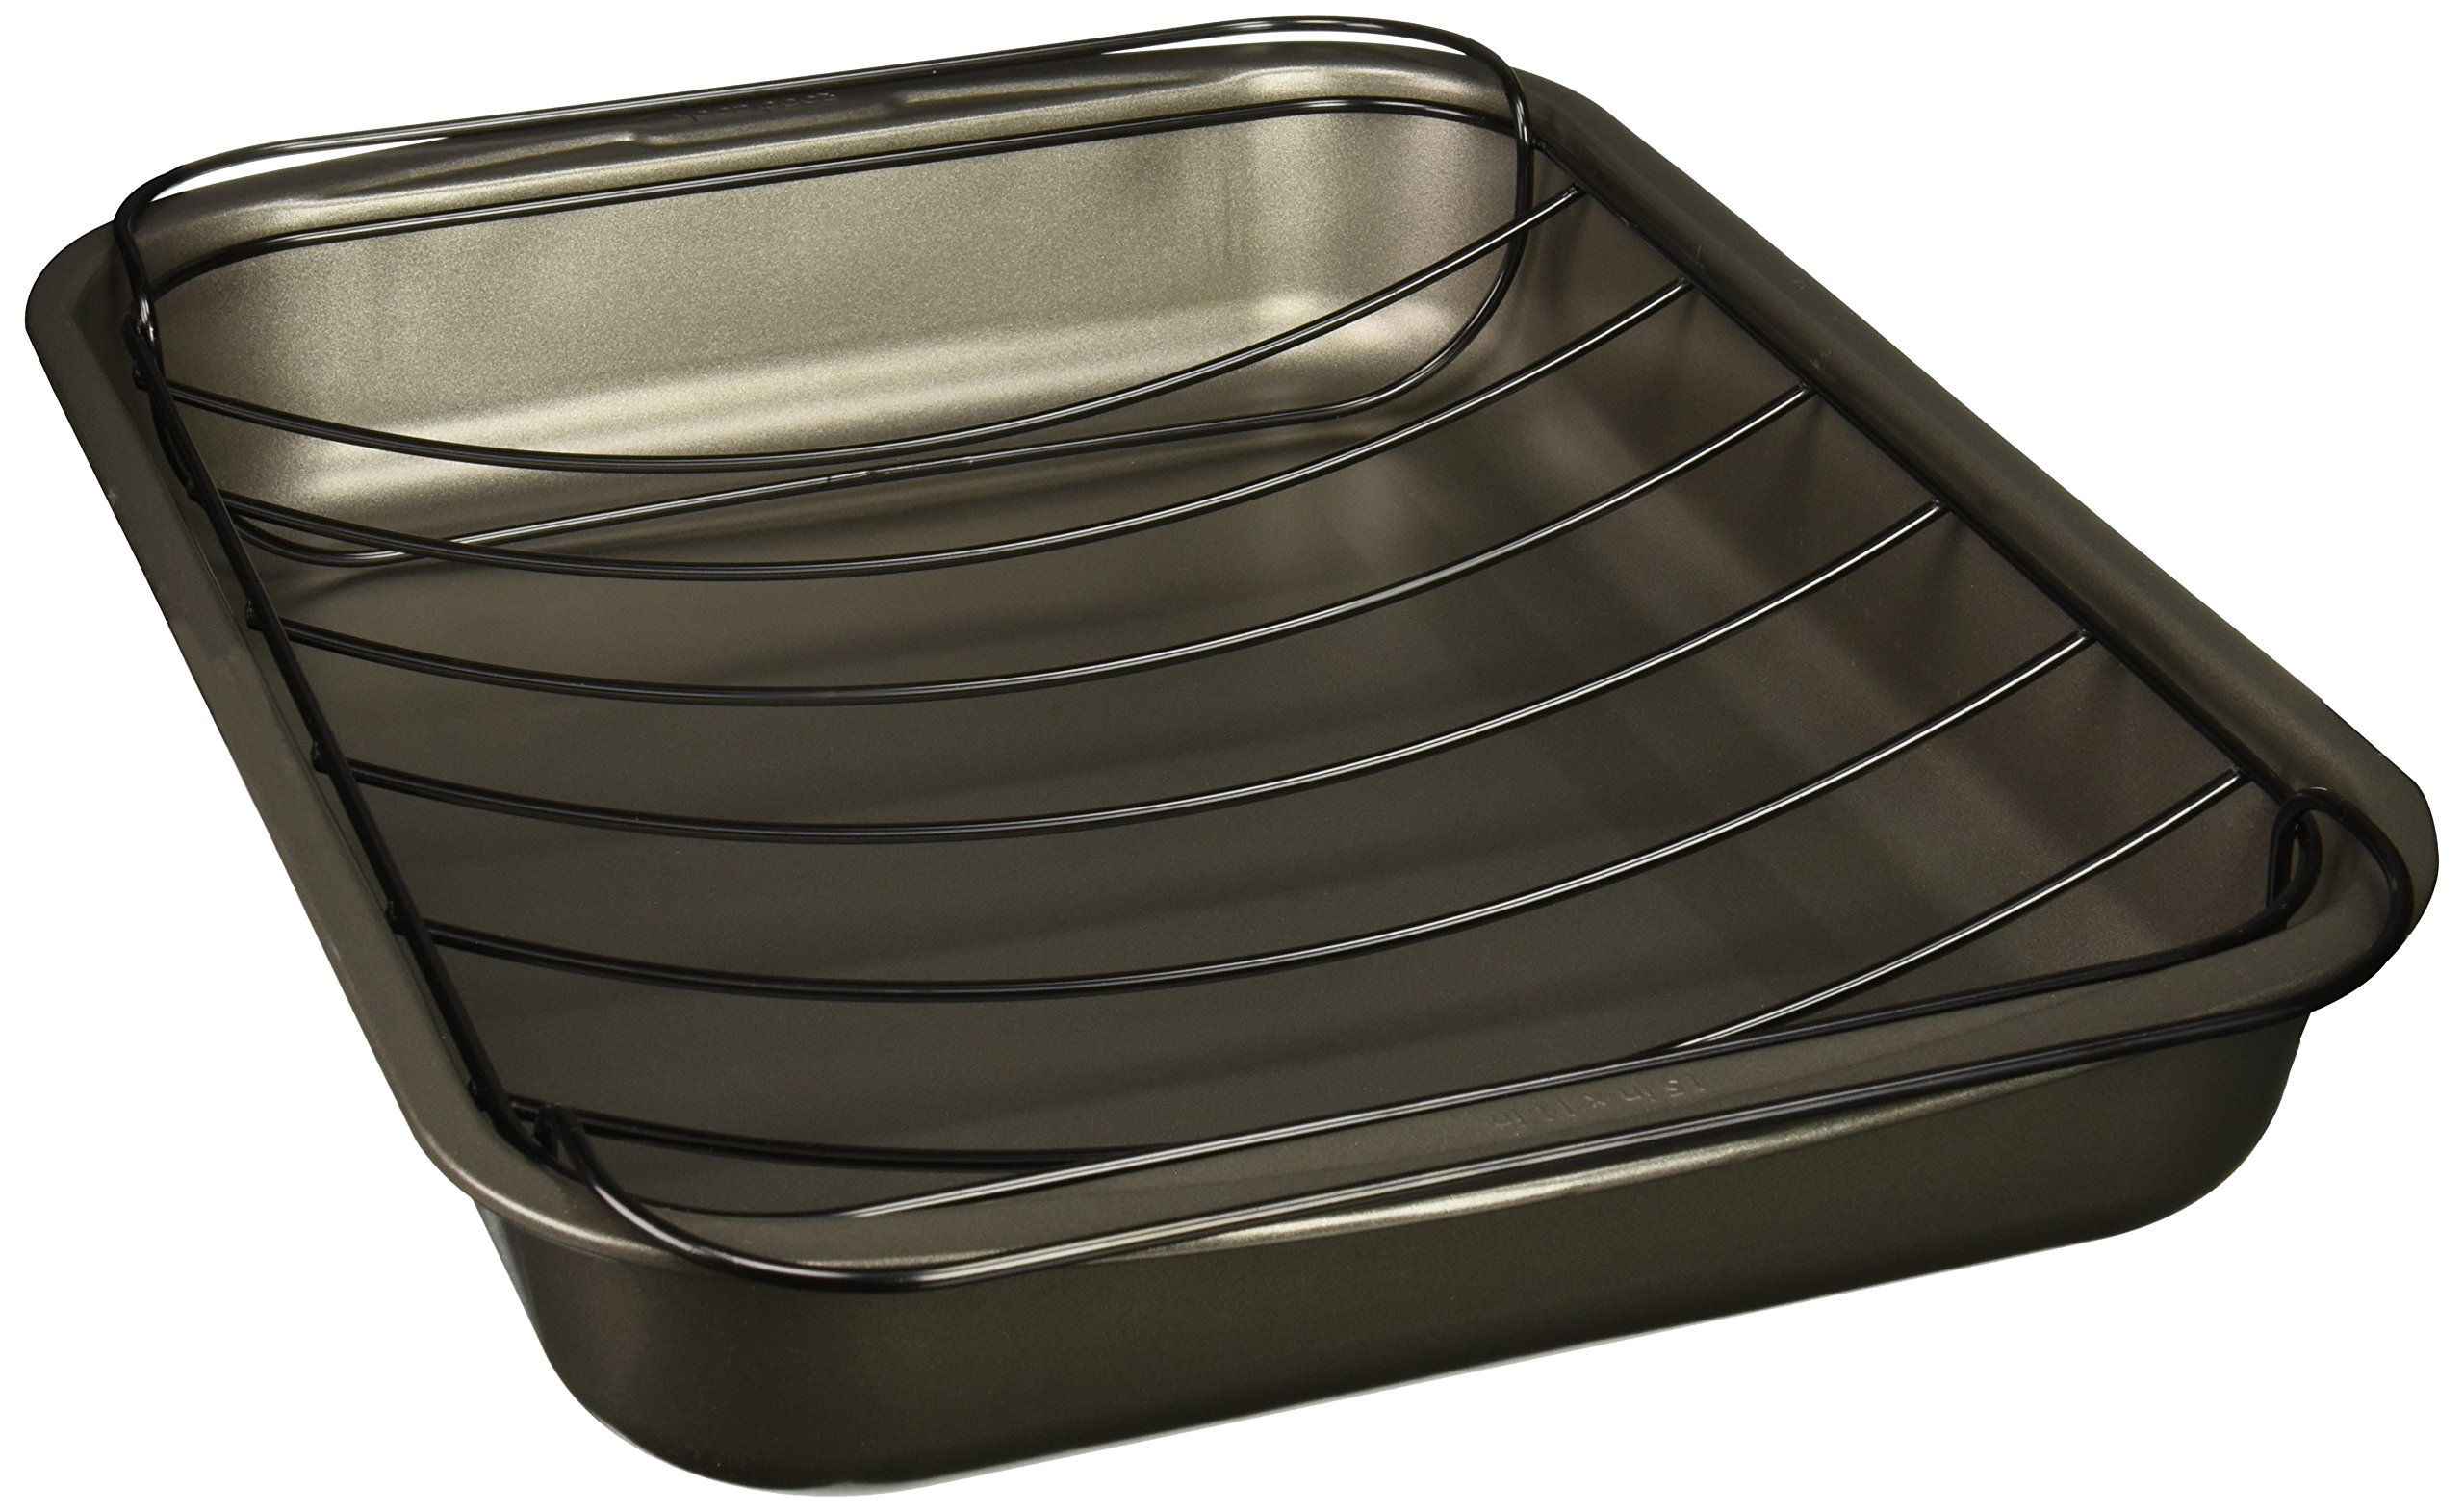 Good Cook Nonstick Large Roast Pan with Rack, 15 x 11'', Gray by Good Cook